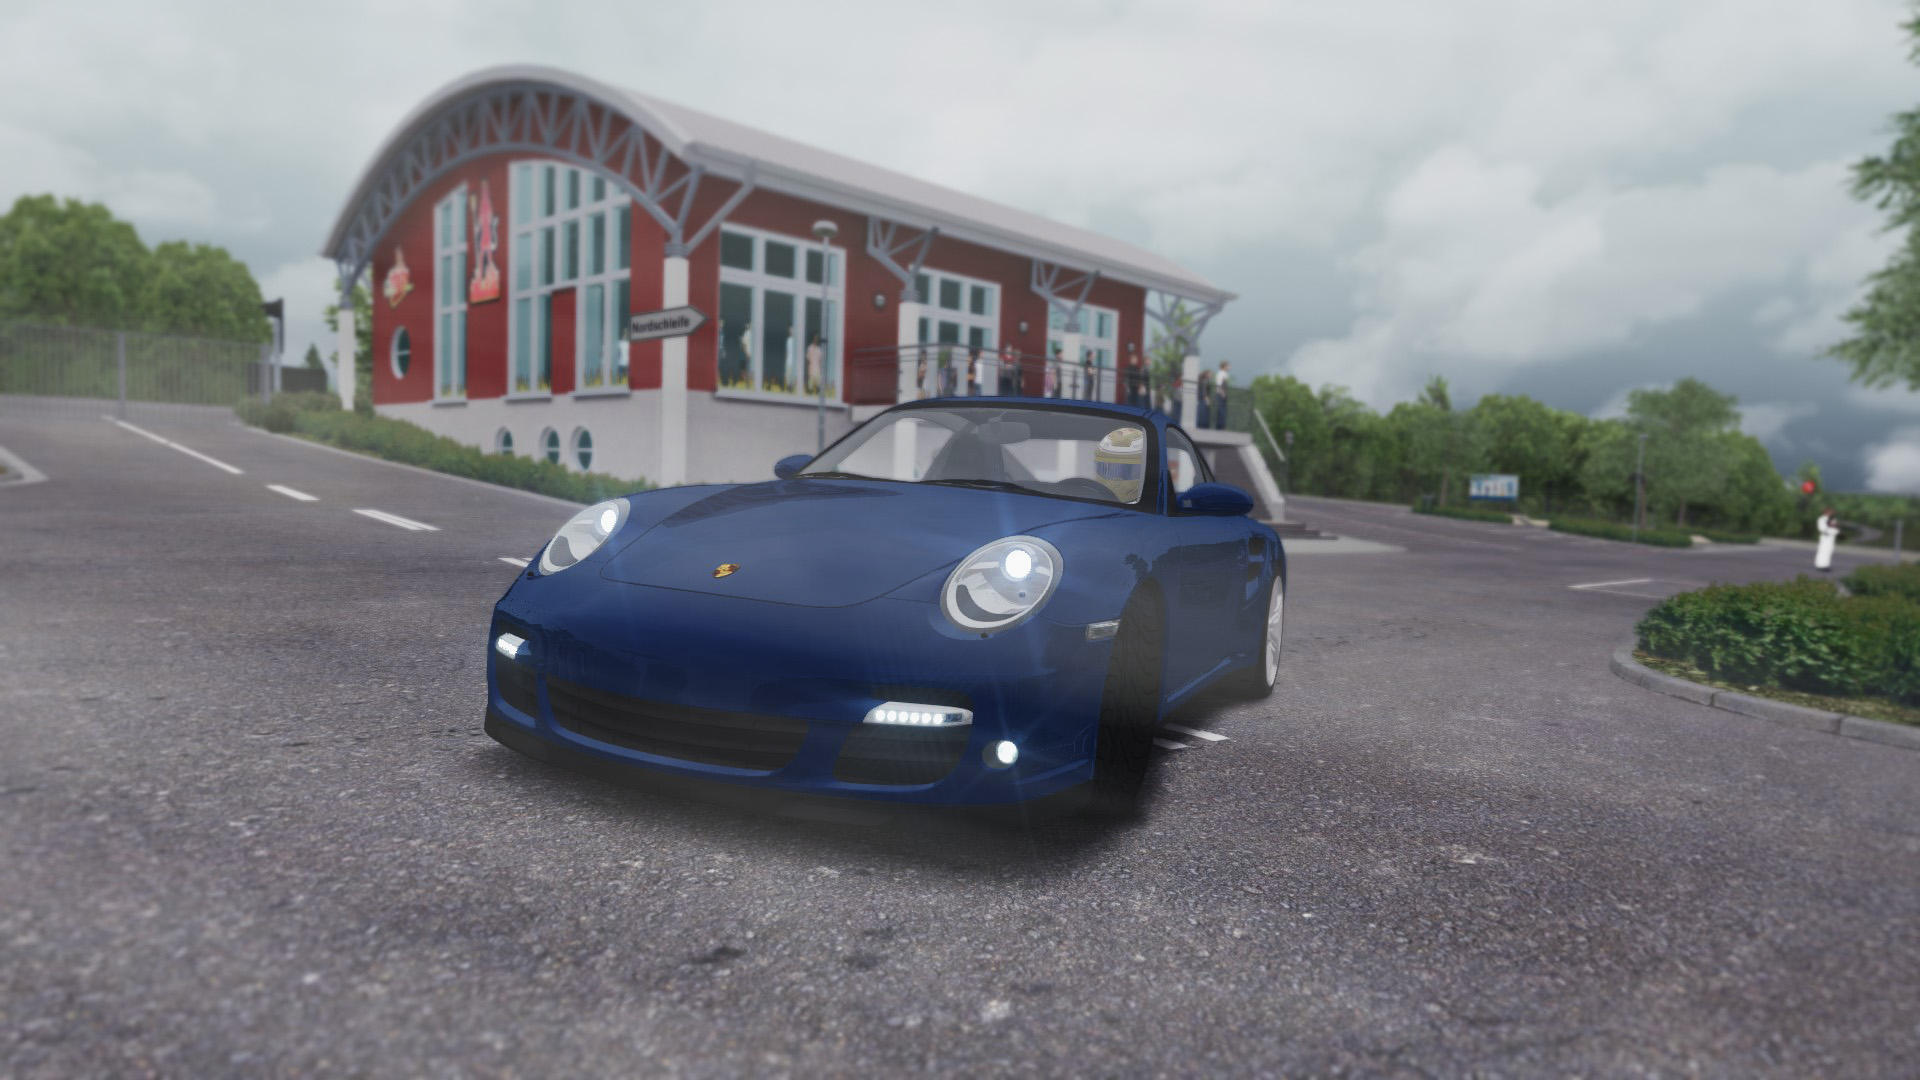 Screenshot_porsche_997turbo_ks_nordschleife_17-8-115-14-51-48.jpg